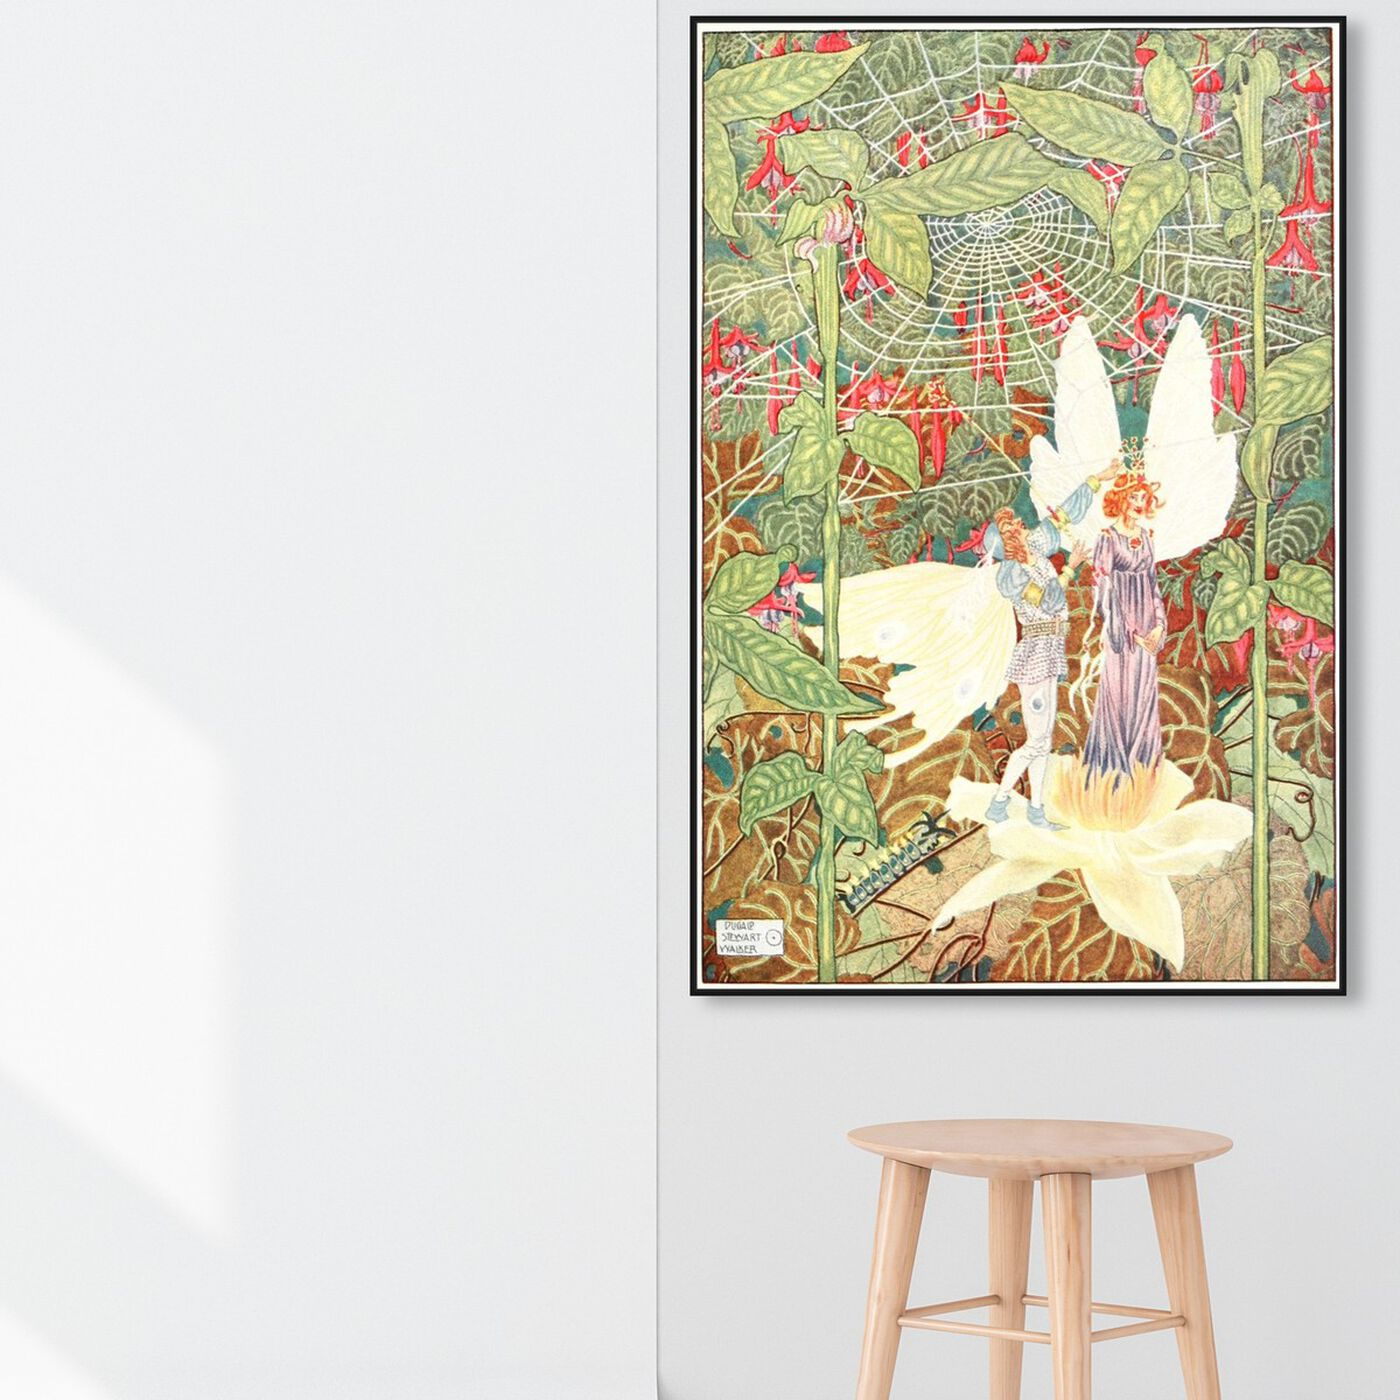 Hanging view of Andersen Fairy Tales II featuring fantasy and sci-fi and fairy tales art.